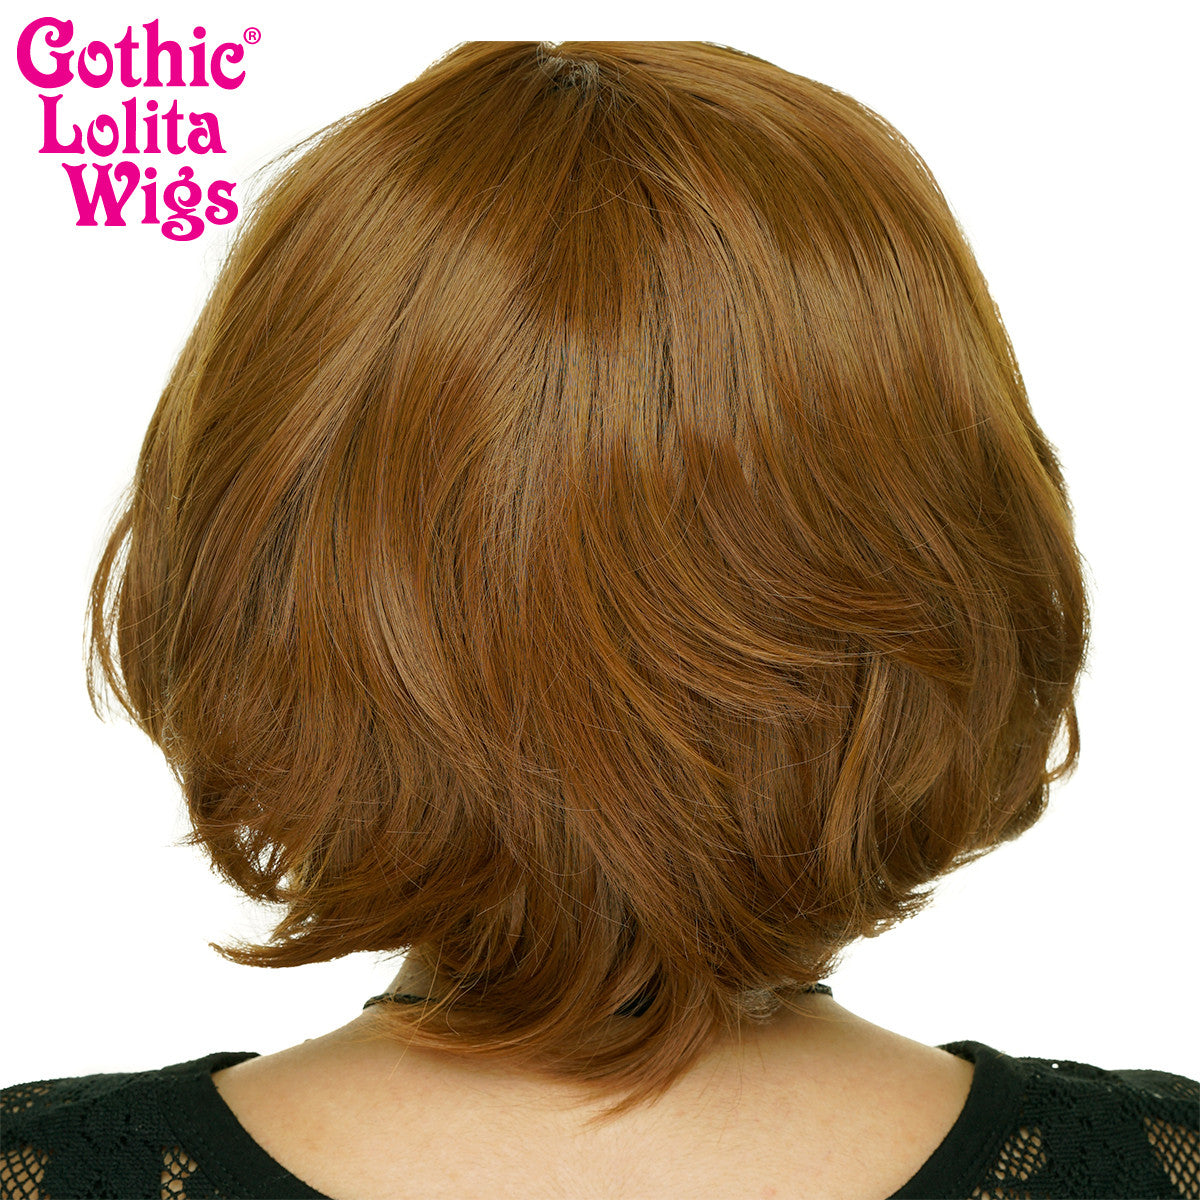 **RETIRED** Lace Front Dainty Bob - Medium Brown Blend - 00757